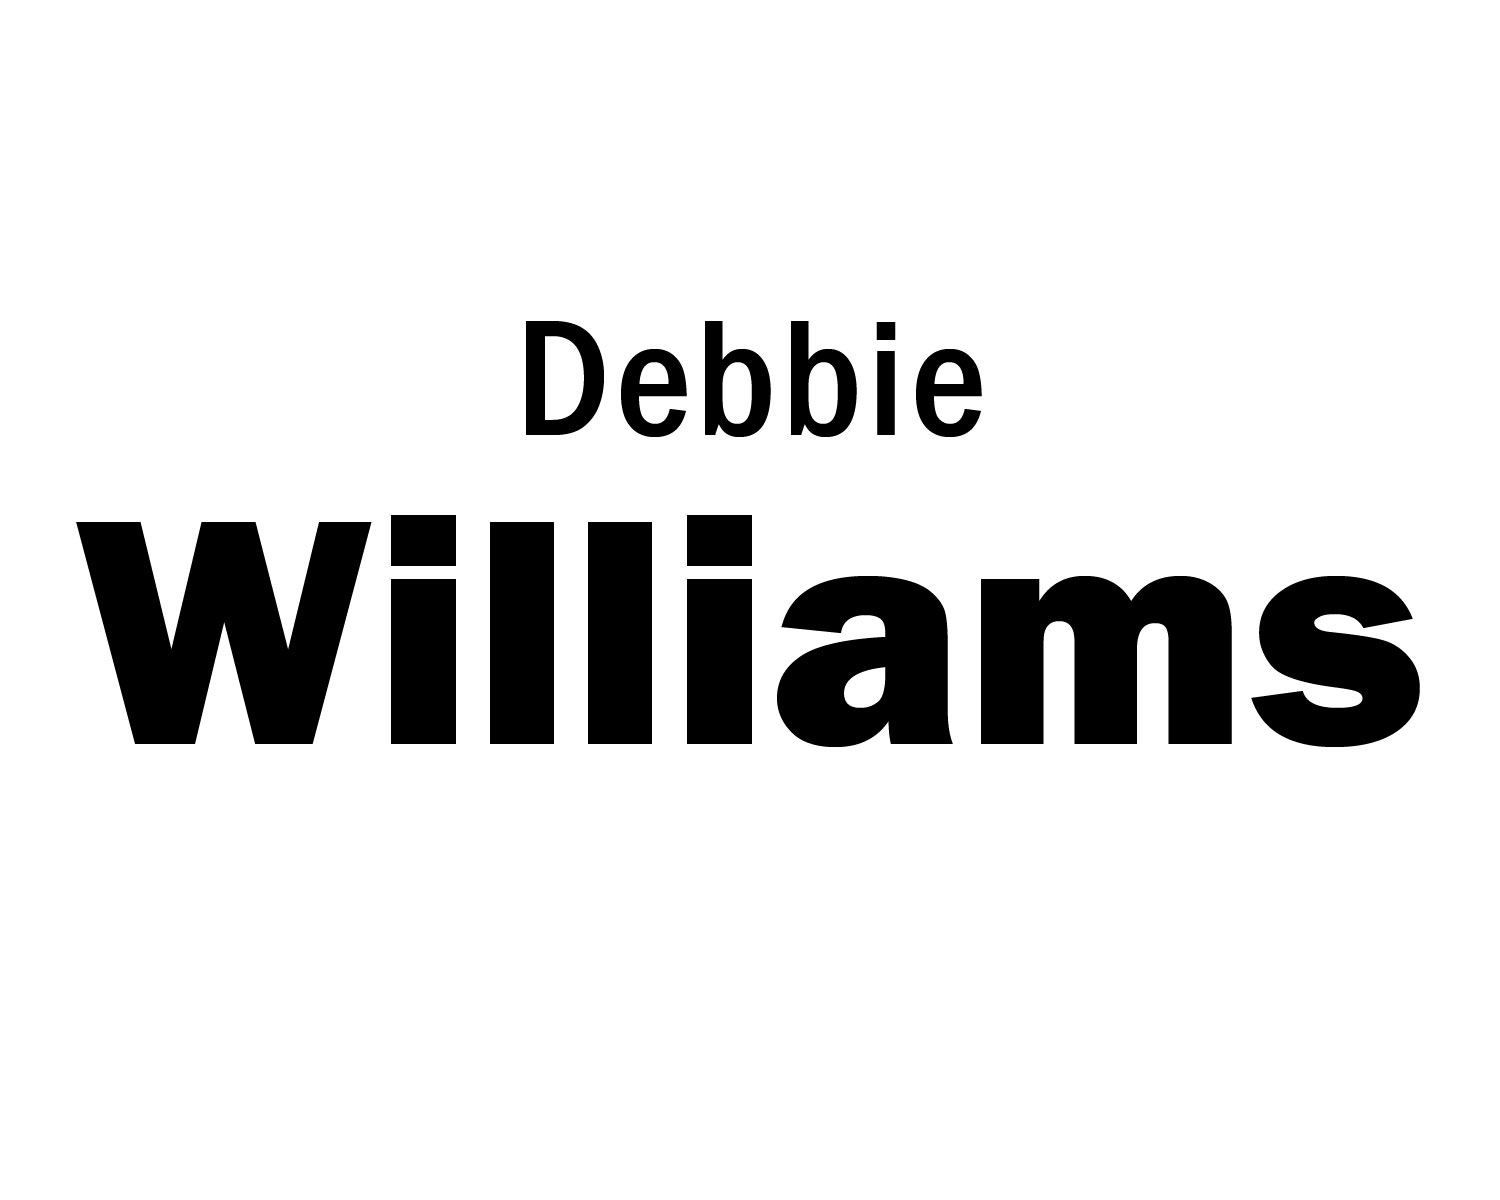 Debbie Williams